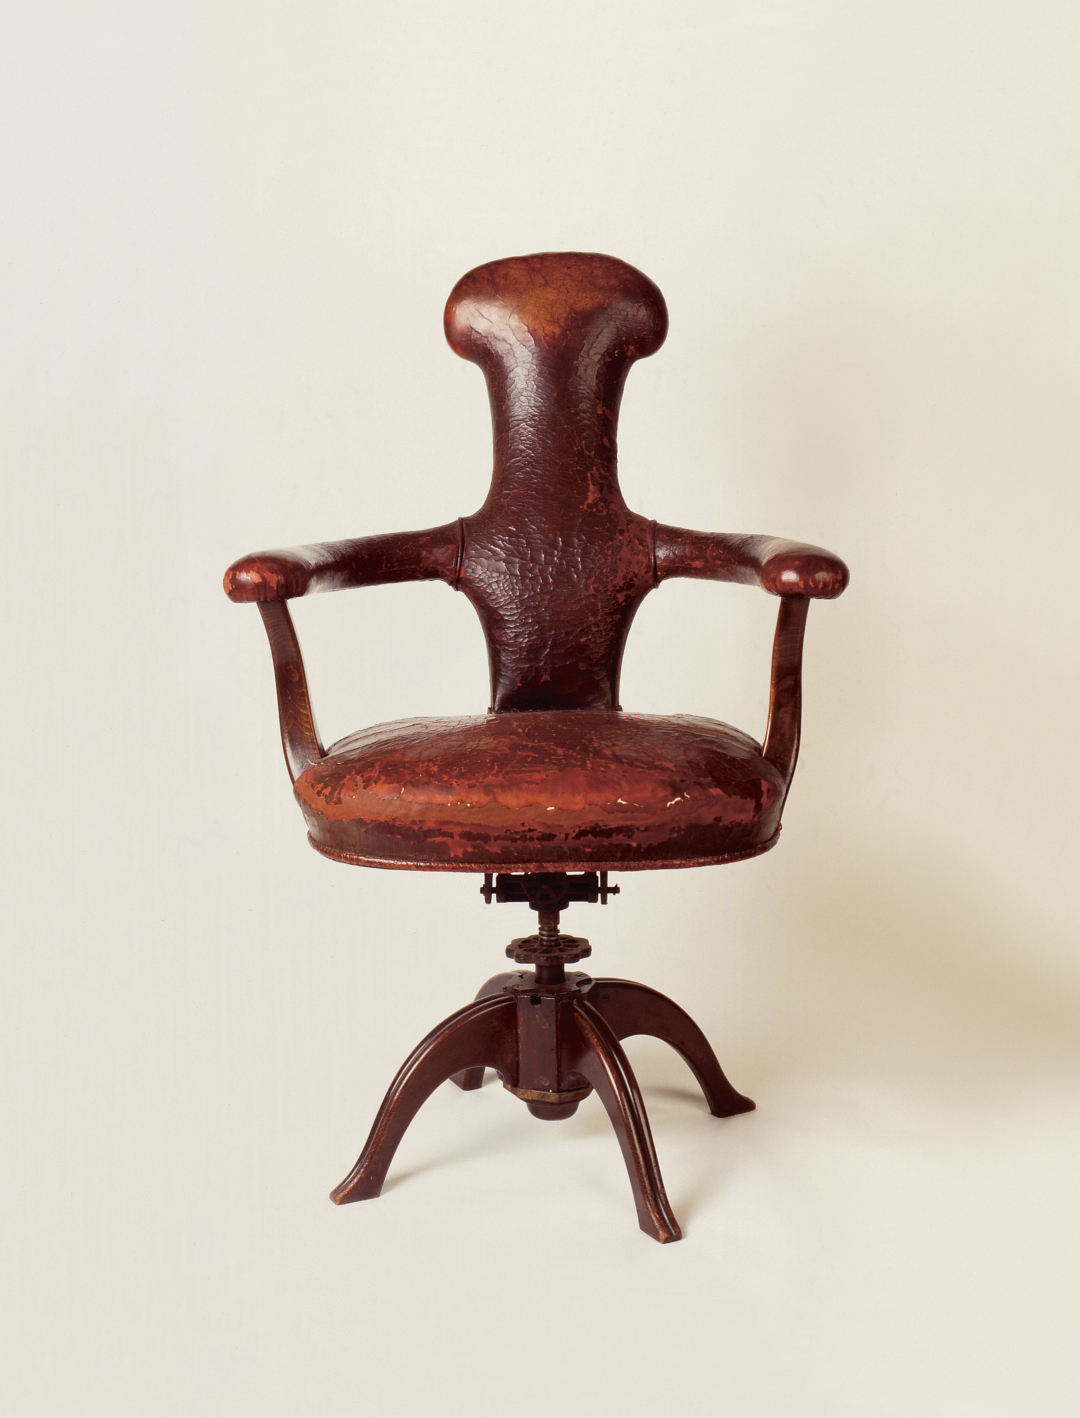 Sigmund Freud's Office Chair (1930) by Felix Augenfeld and Karl Hofmann